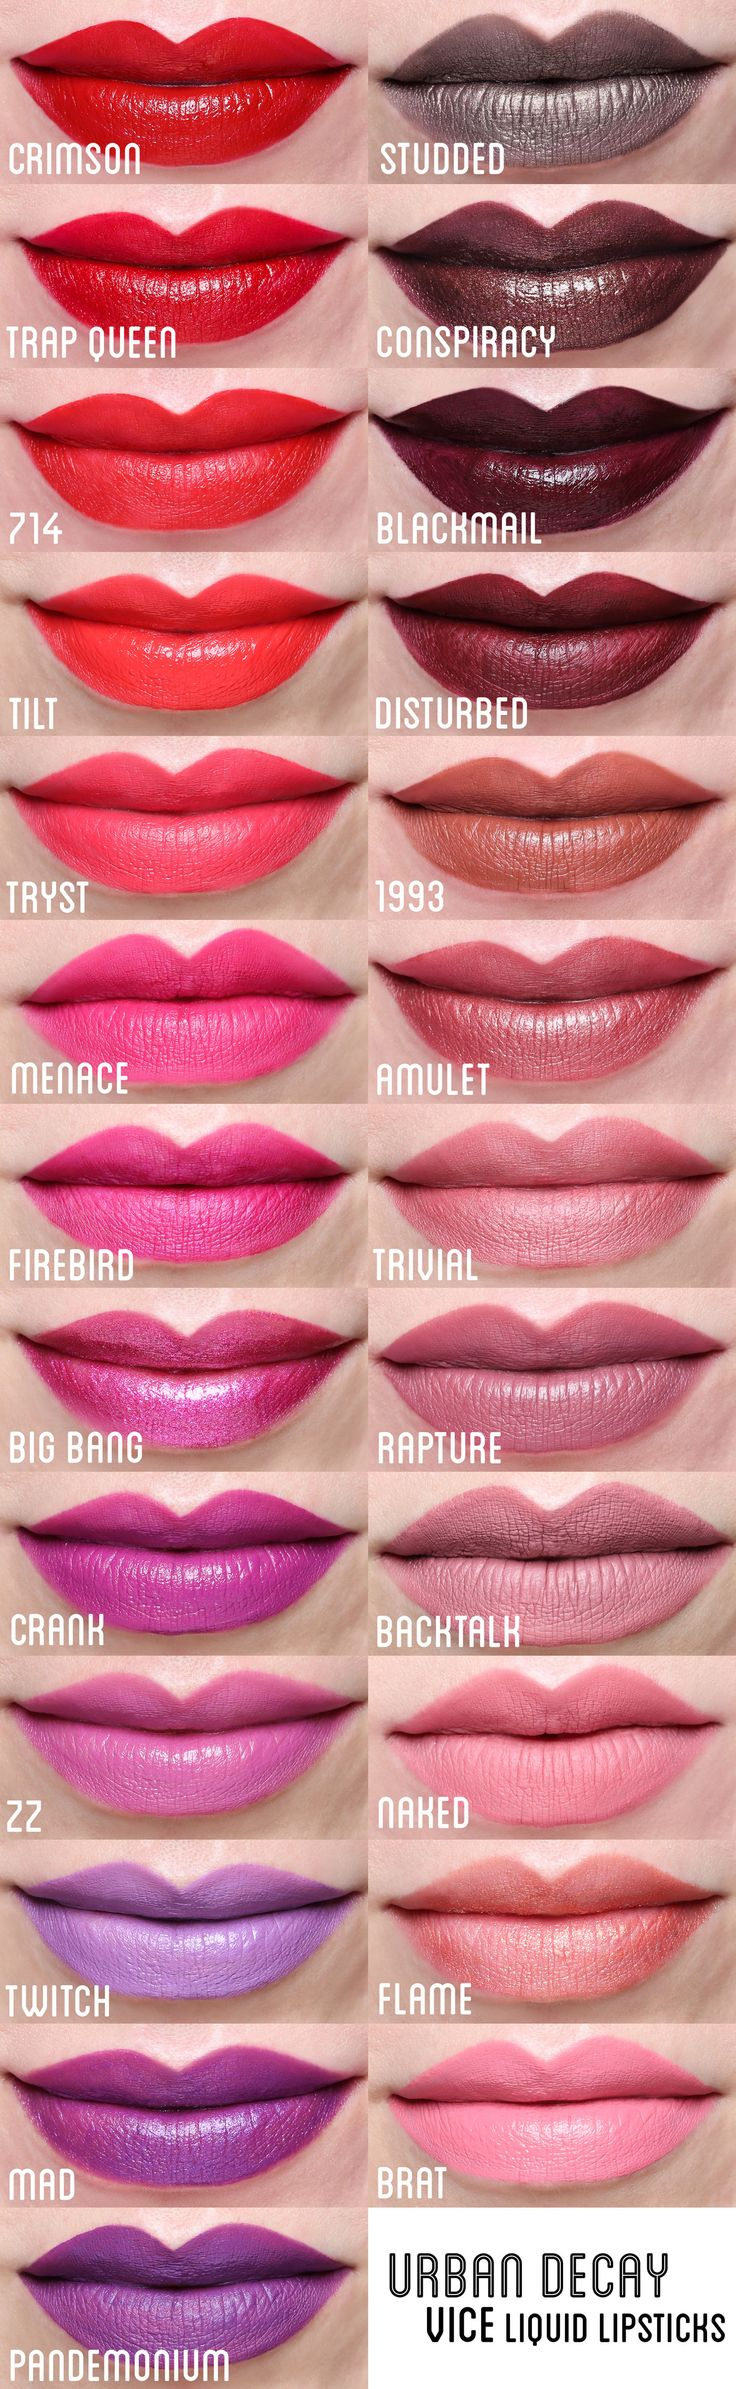 Urban Decay Vice Liquid Lipstick -Flame, Trivial, Rapure, Backtalk Bigbang, Then Brat, twitch, ZZ, mad, Backtalk, Naked,